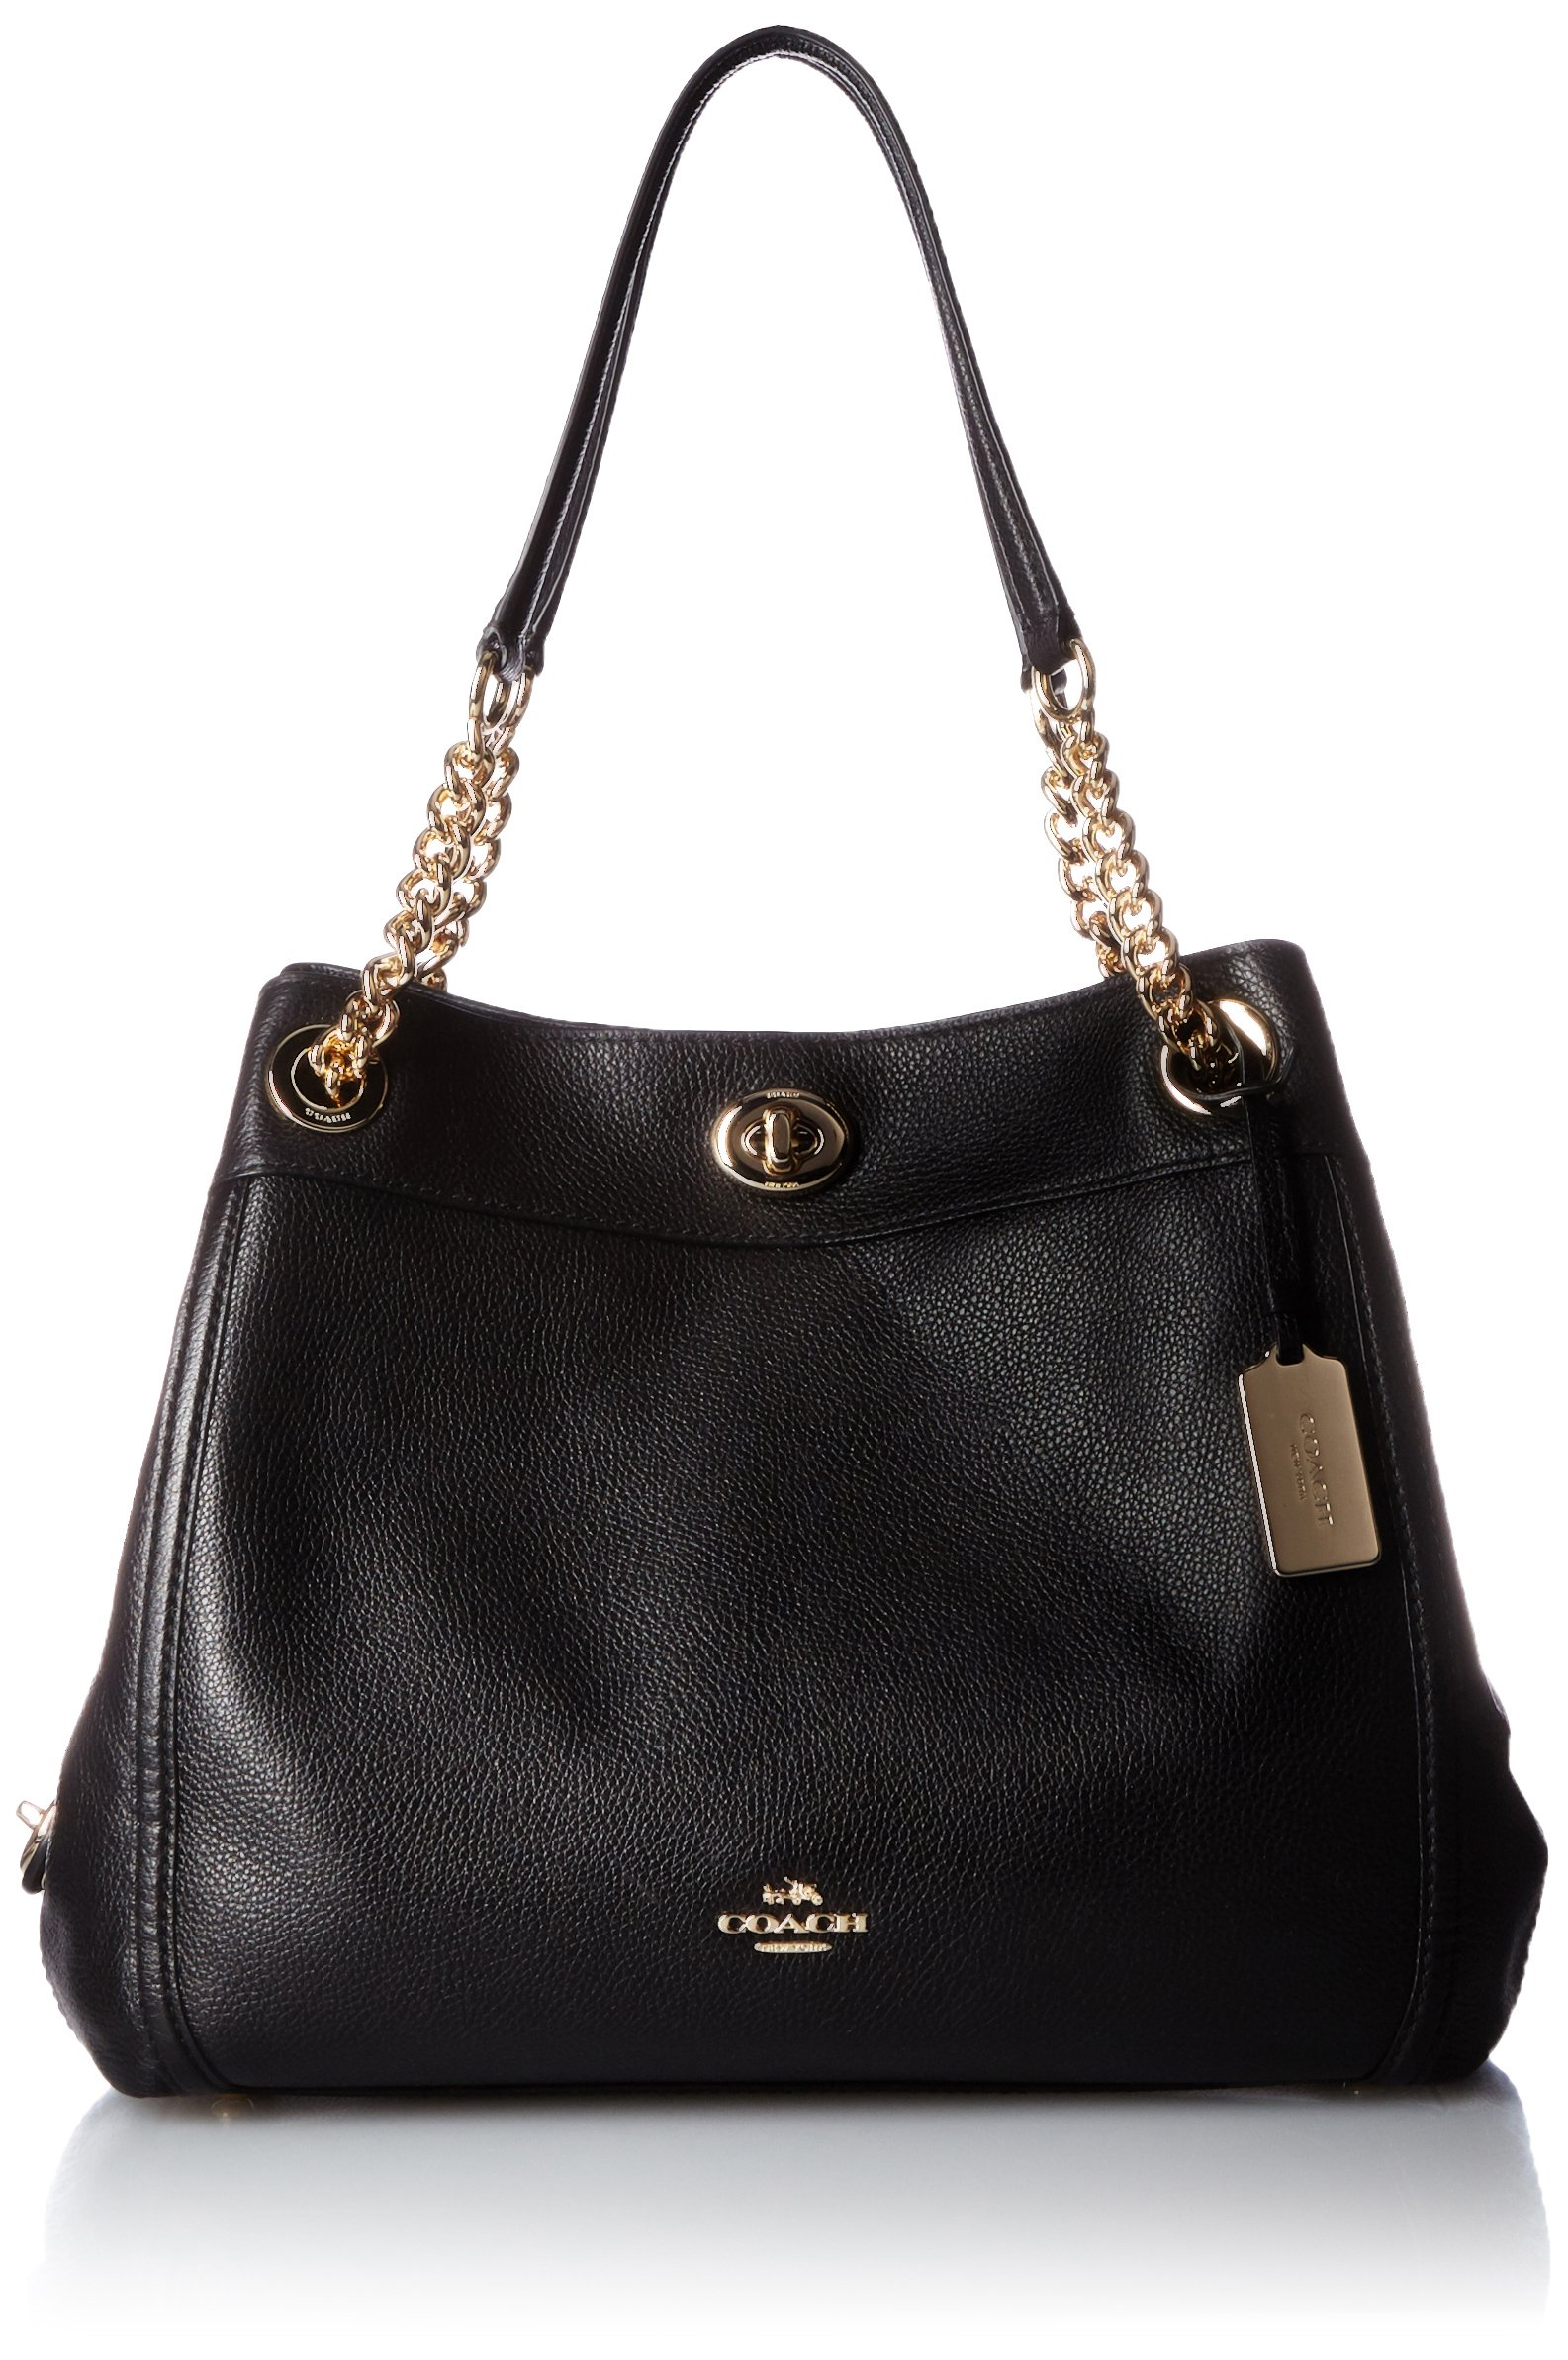 COACH Womens Turnlock Edie LIBlack Shoulder Bag . afbef8a9c018f